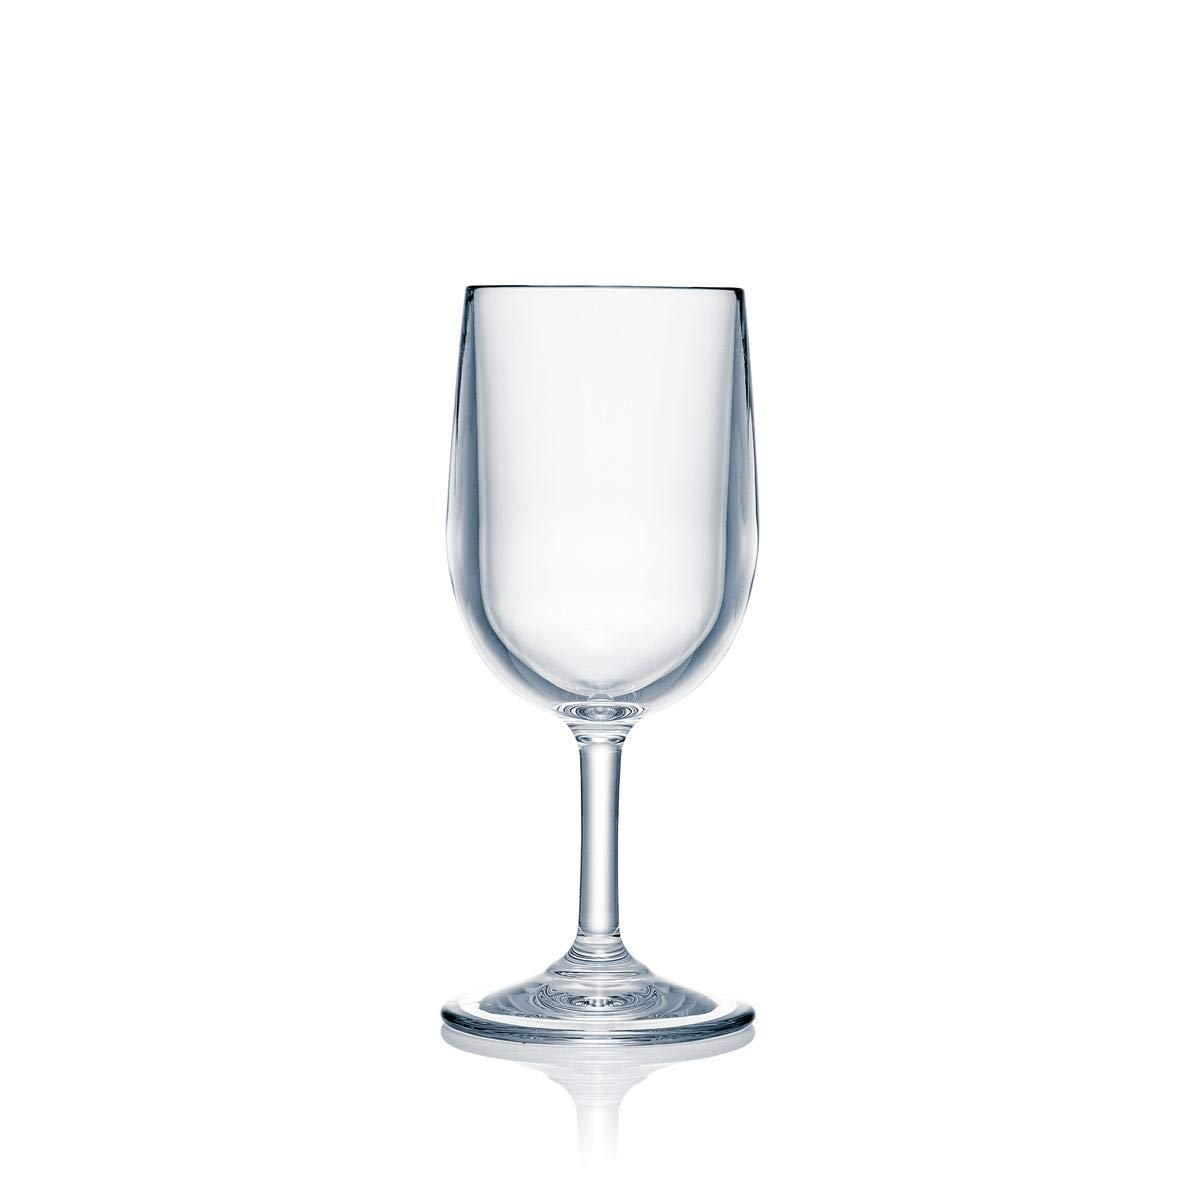 Strahl Design+Contemporary 8-oz Wine Glass, Set of 4